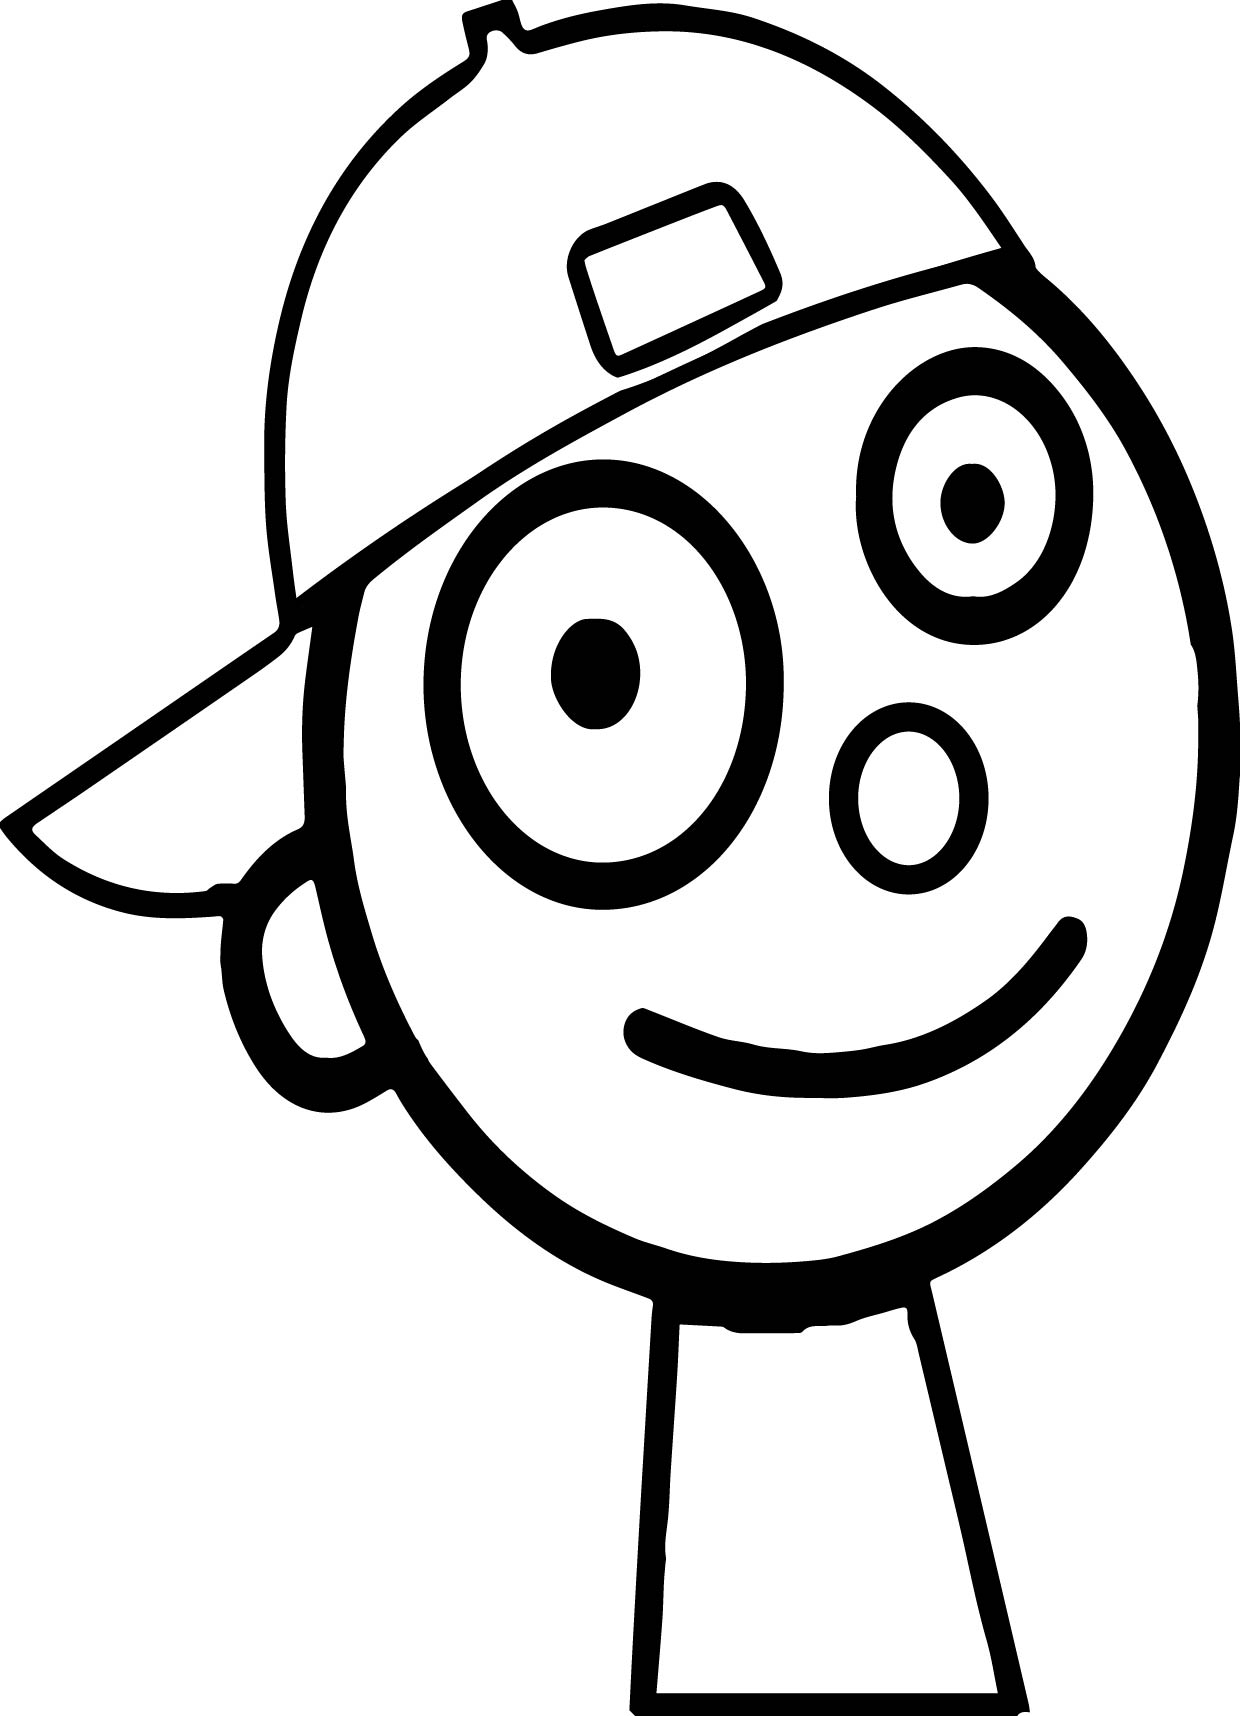 pbskids coloring pages - photo#24